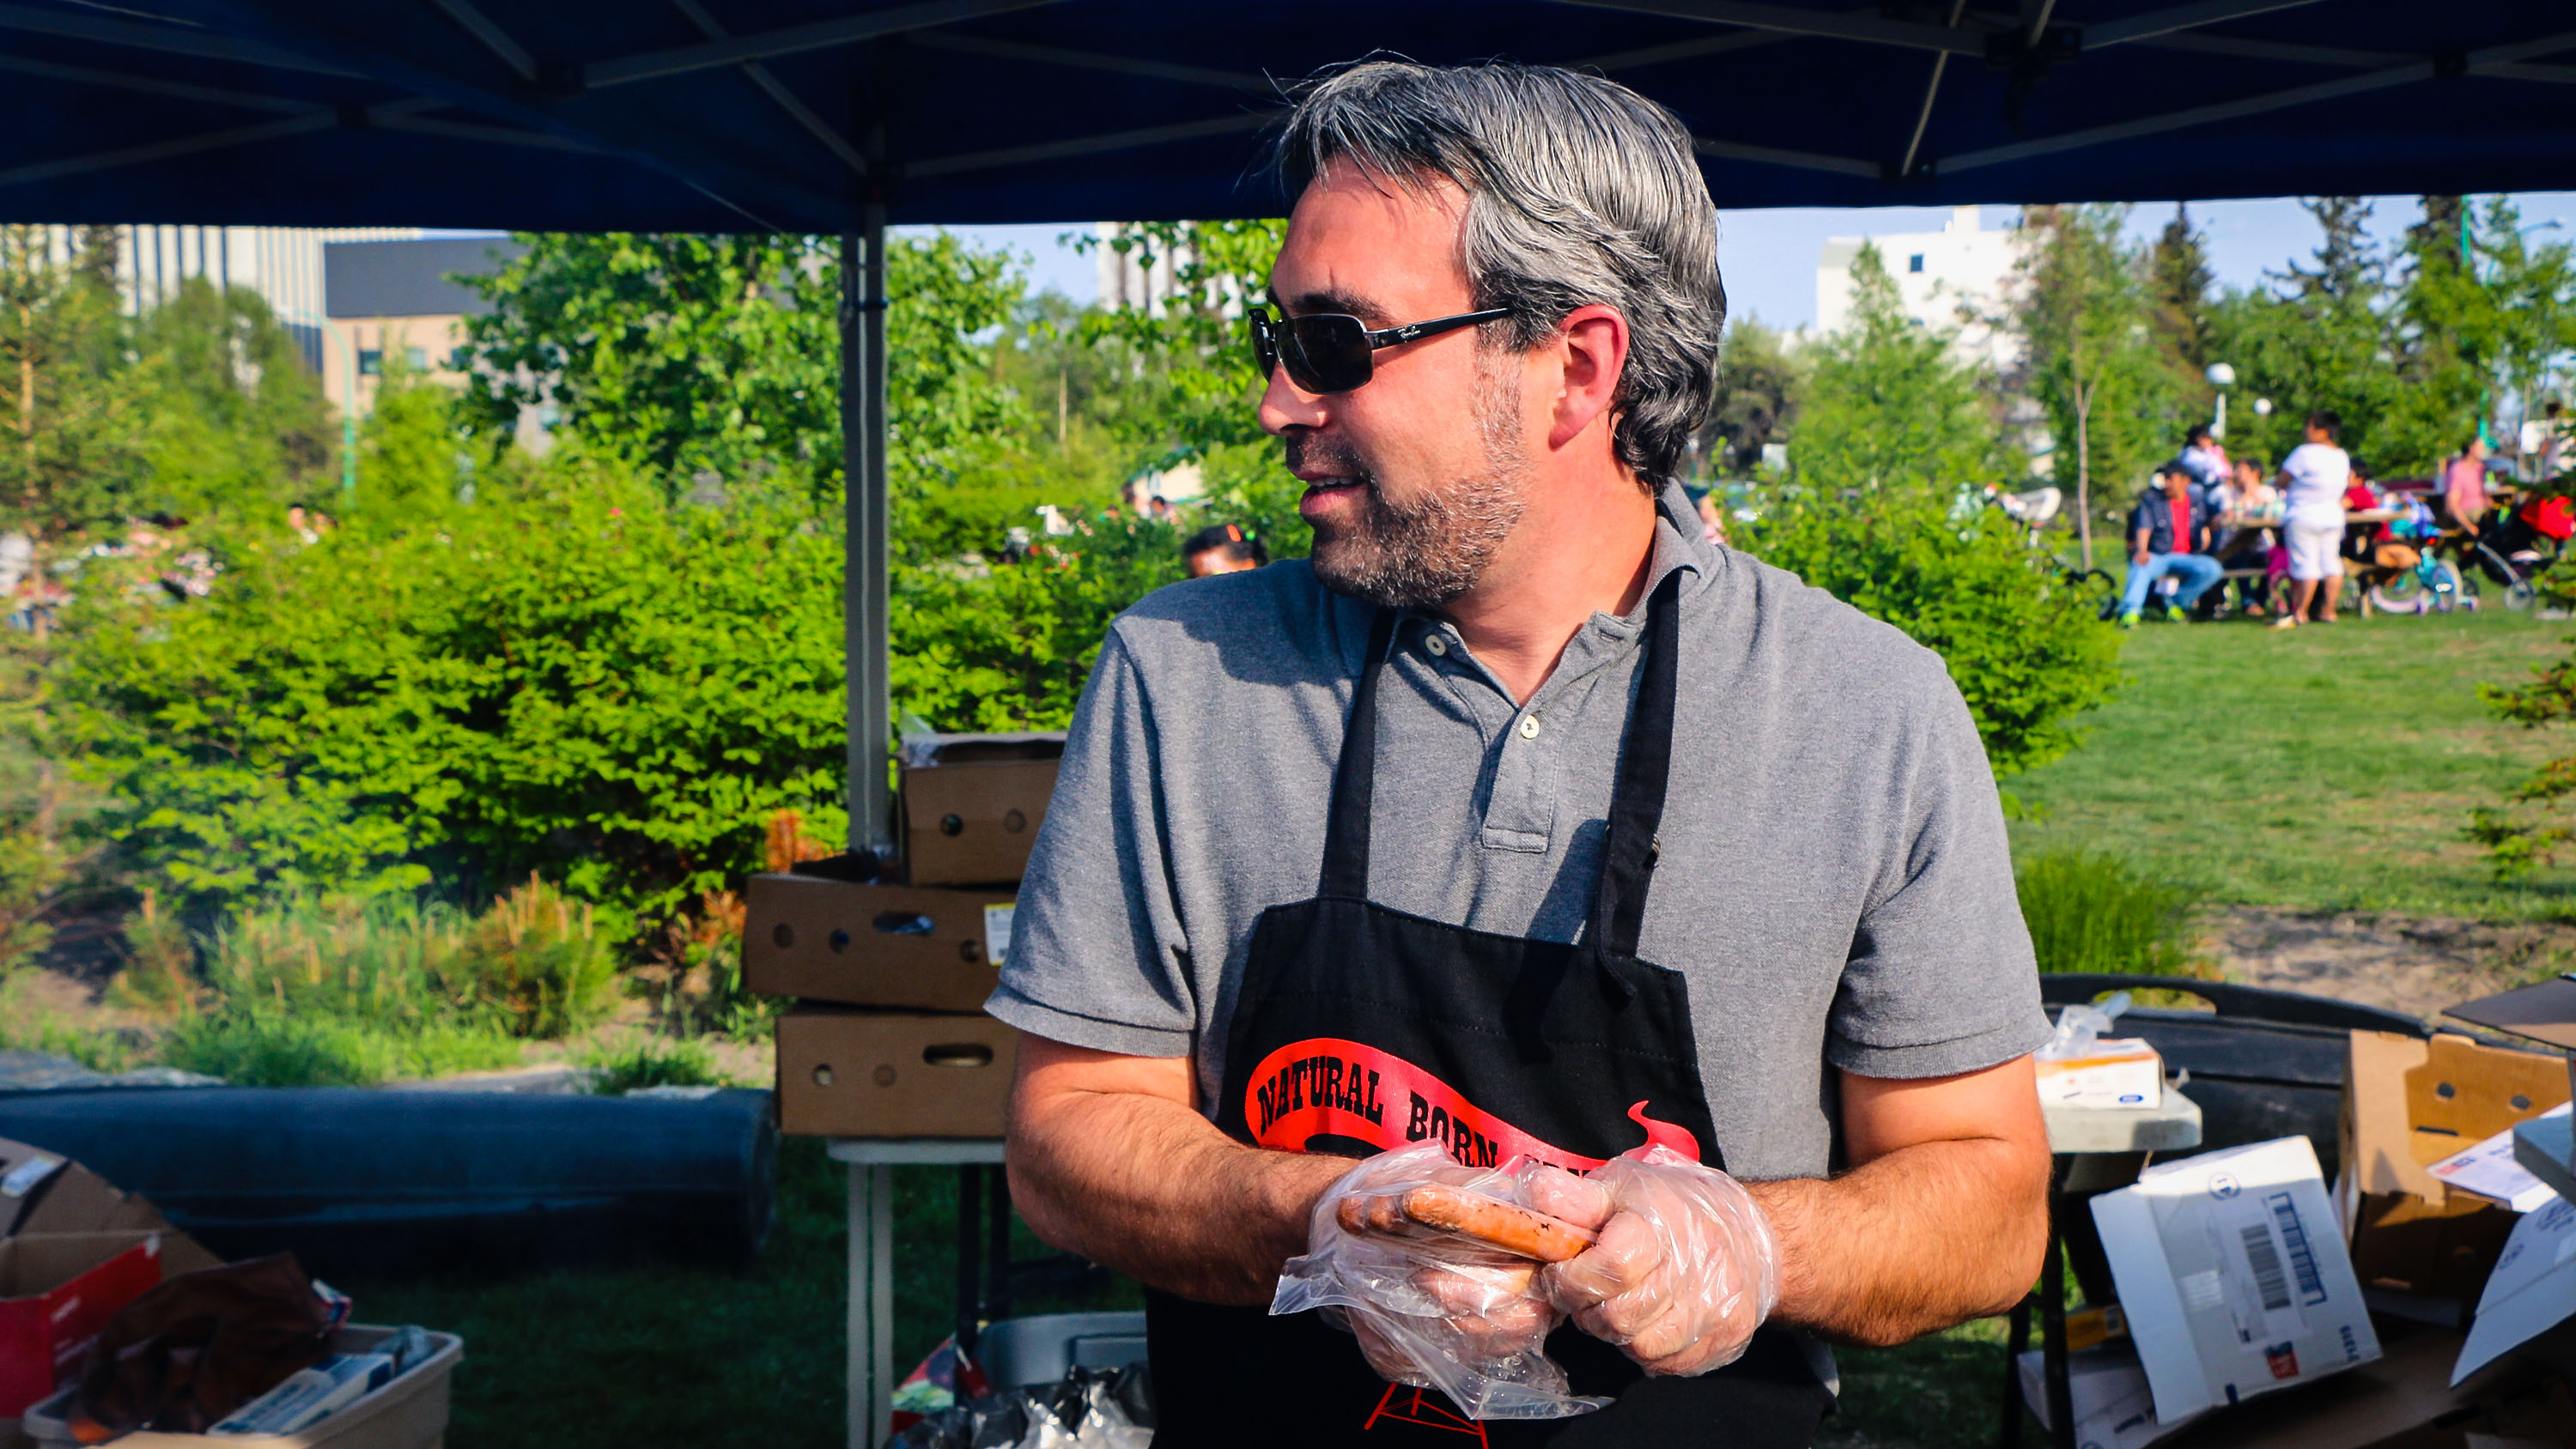 Mark Heyck, mayor of Yellowknife, pictured grilling hot dogs in summer 2015 at a city event